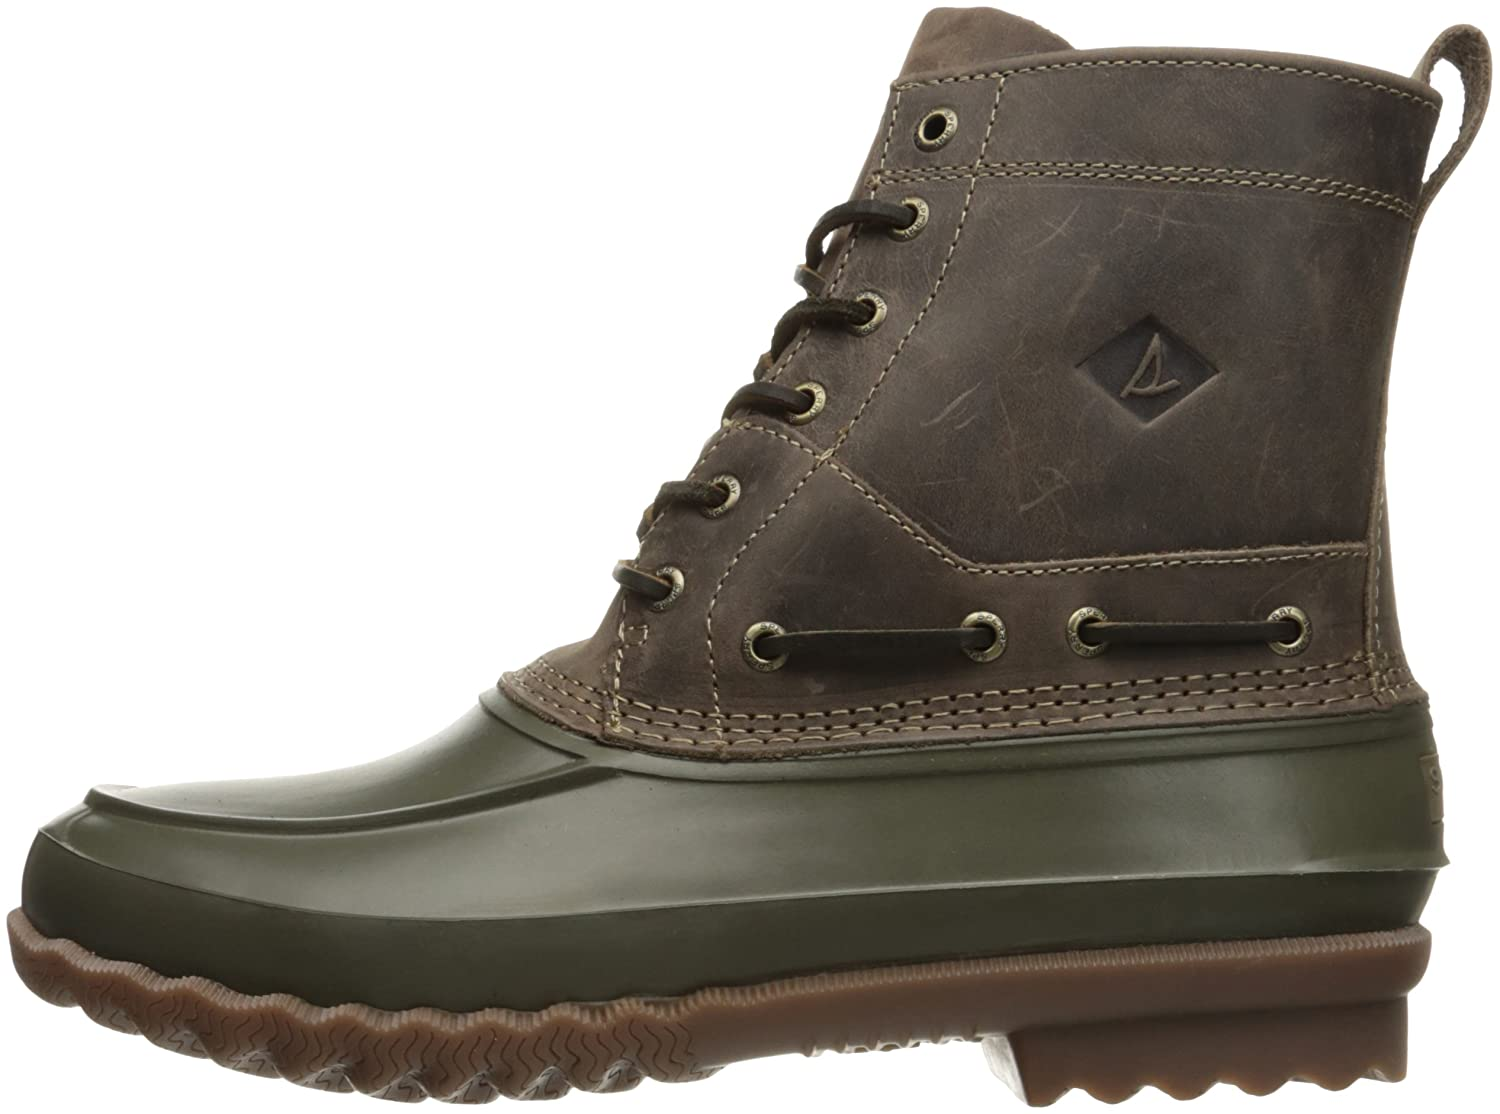 Sperry Top-Sider Men's Decoy Rain Rain Rain Stiefel, Dark Grün, 7.5 M US 3ca575